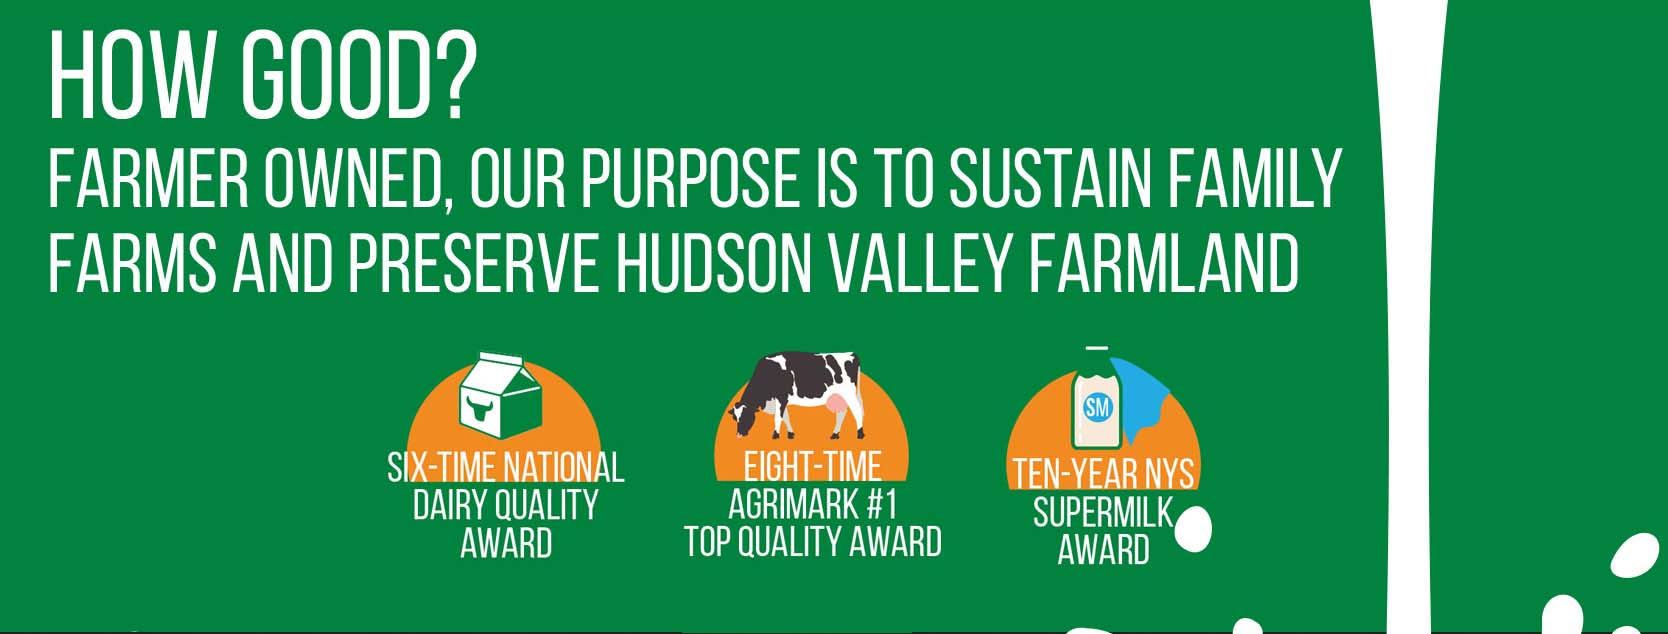 How Good? Helps local family farms thrive and preserves Hudson Valley farmland